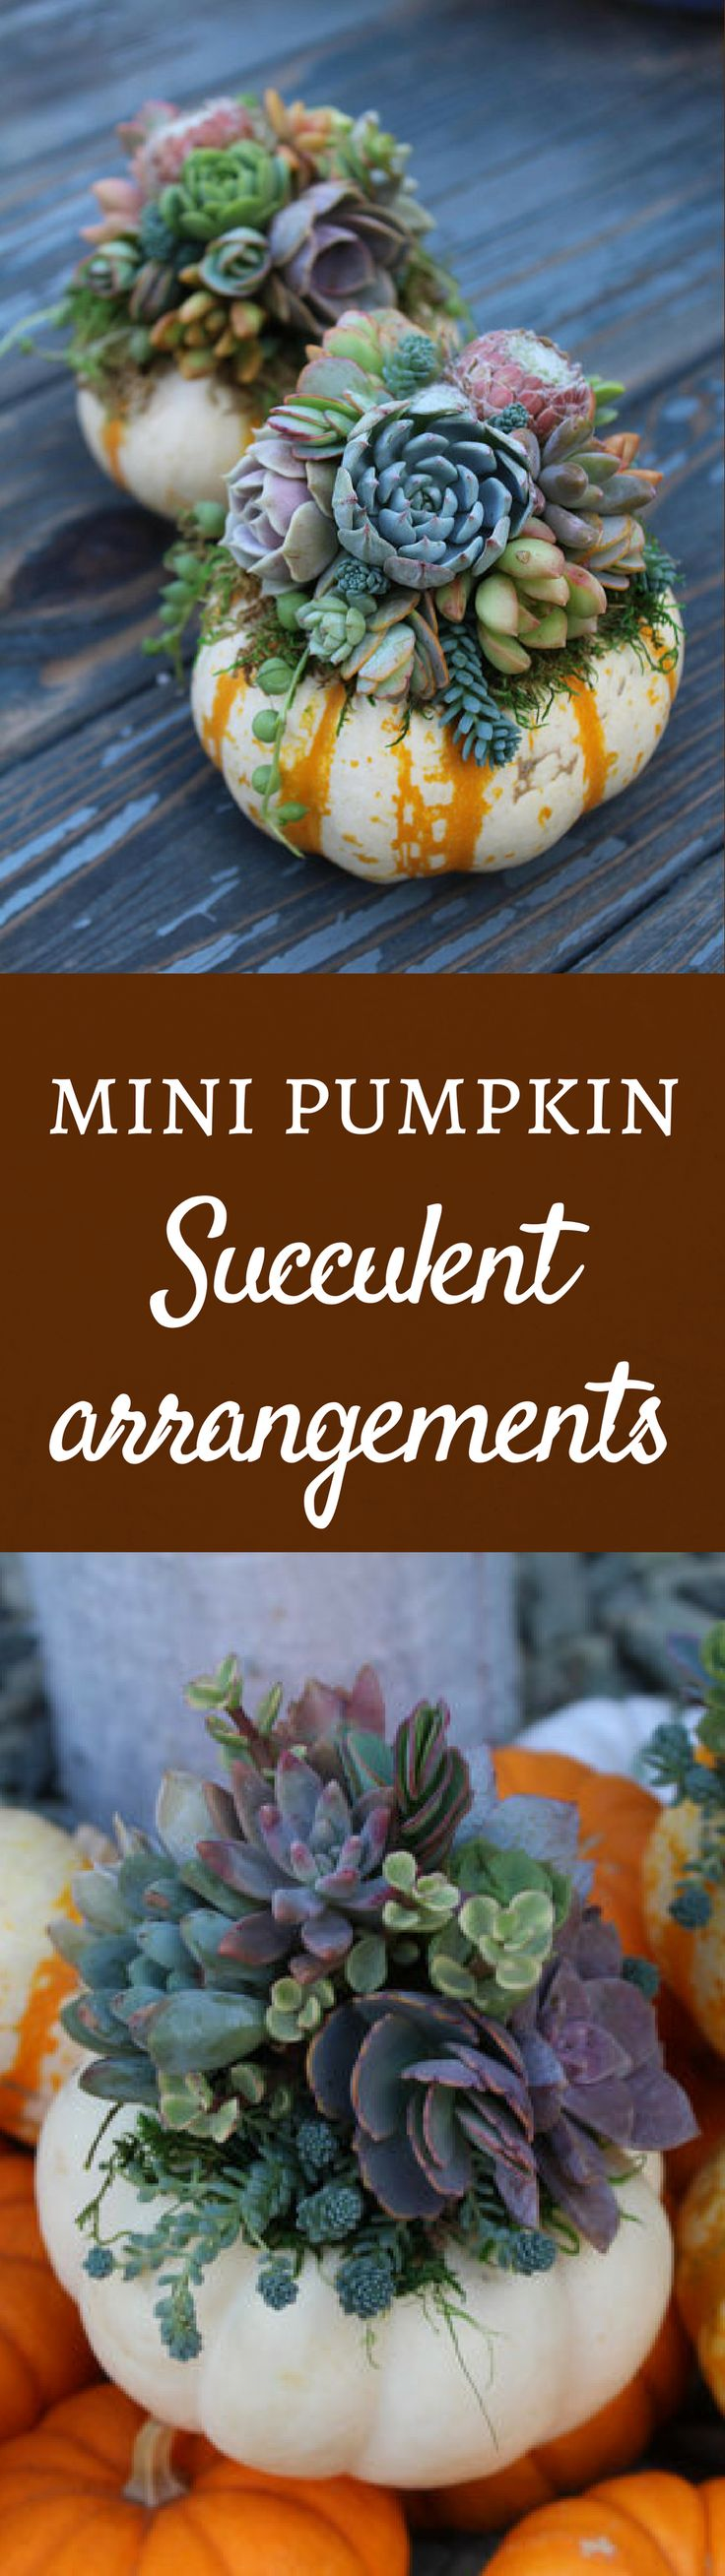 Decorate for fall this year with something a little different, a pumpkin planter filled with live succulent plants!  Once the pumpkin is spent, re-plant the succulents into another container.  A fun and pretty alternative for your holiday centerpiece, man